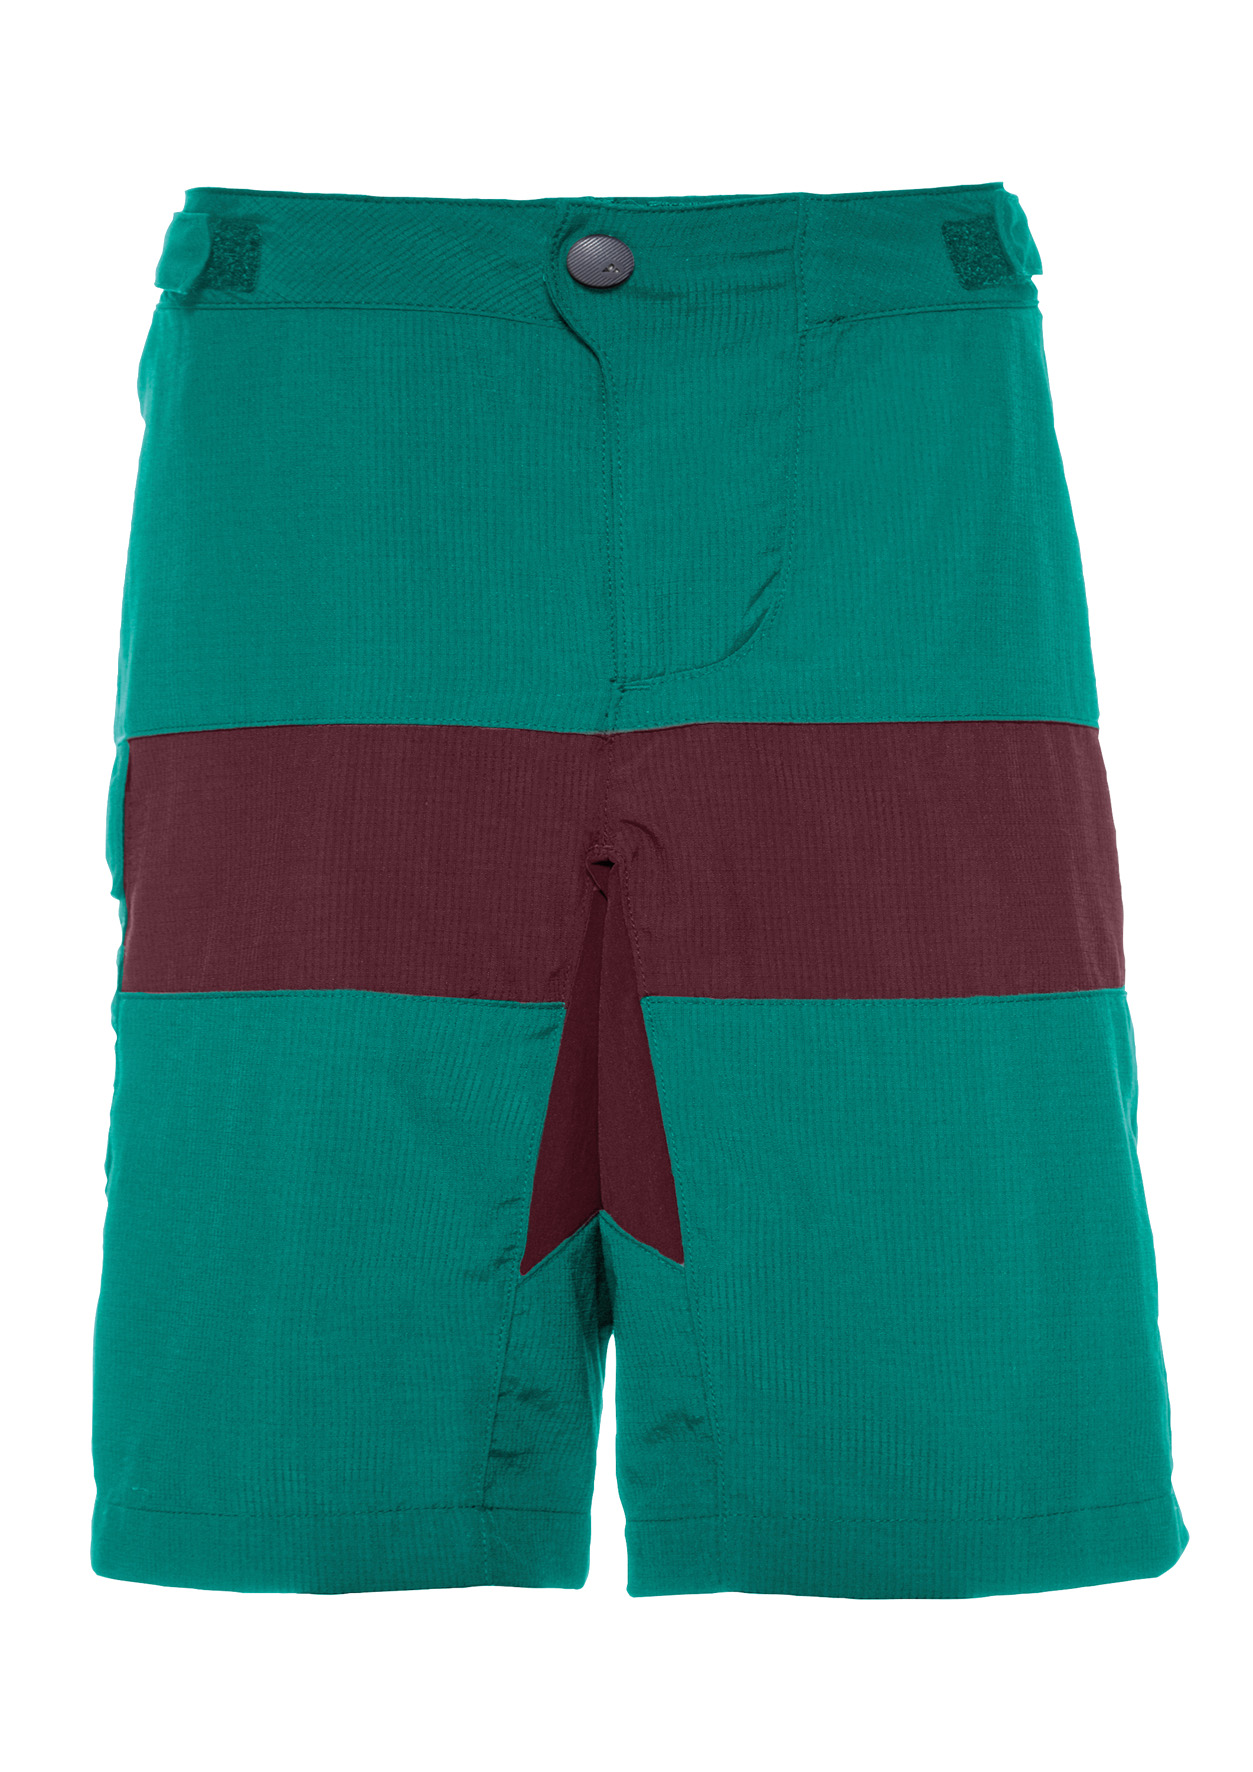 Kids Grody Shorts IV lotus green Größe 110/116 - schneider-sports